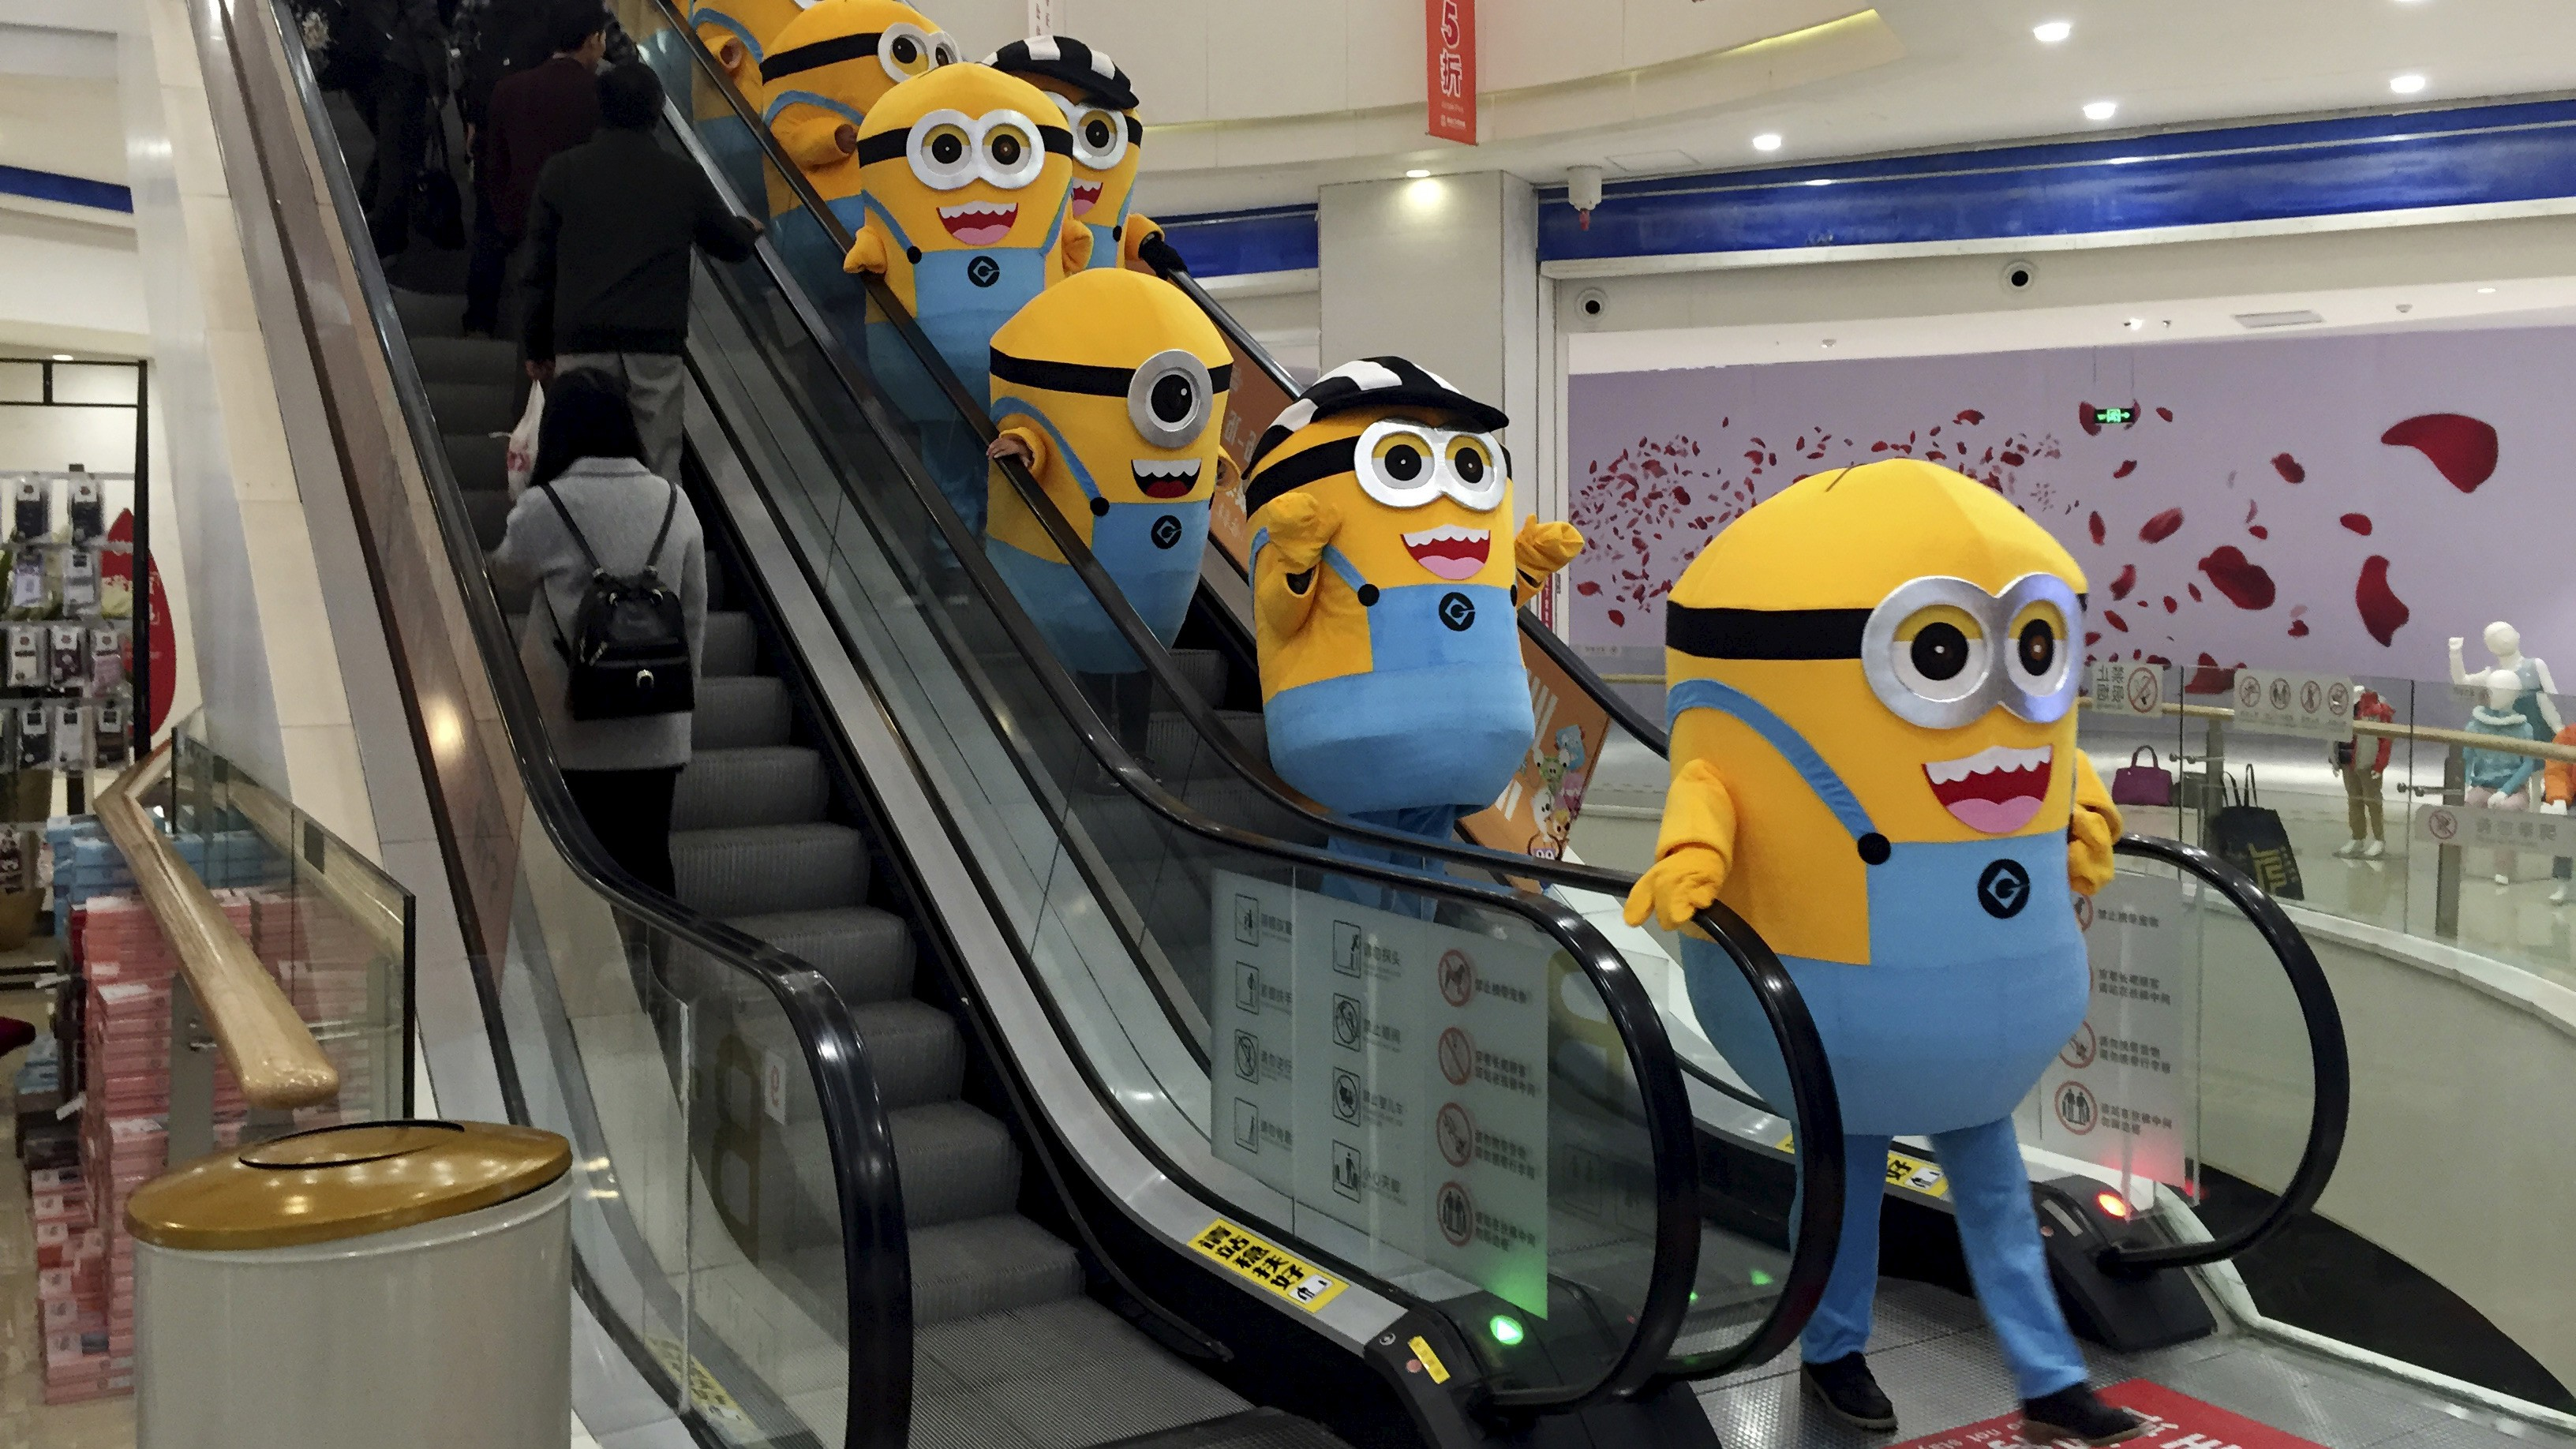 """People dressed as minions from the film """"Minions"""" take an escalator during a promotional event at a department store in Wuhan, Hubei province, China, November 14, 2015. Picture taken November 14, 2015."""